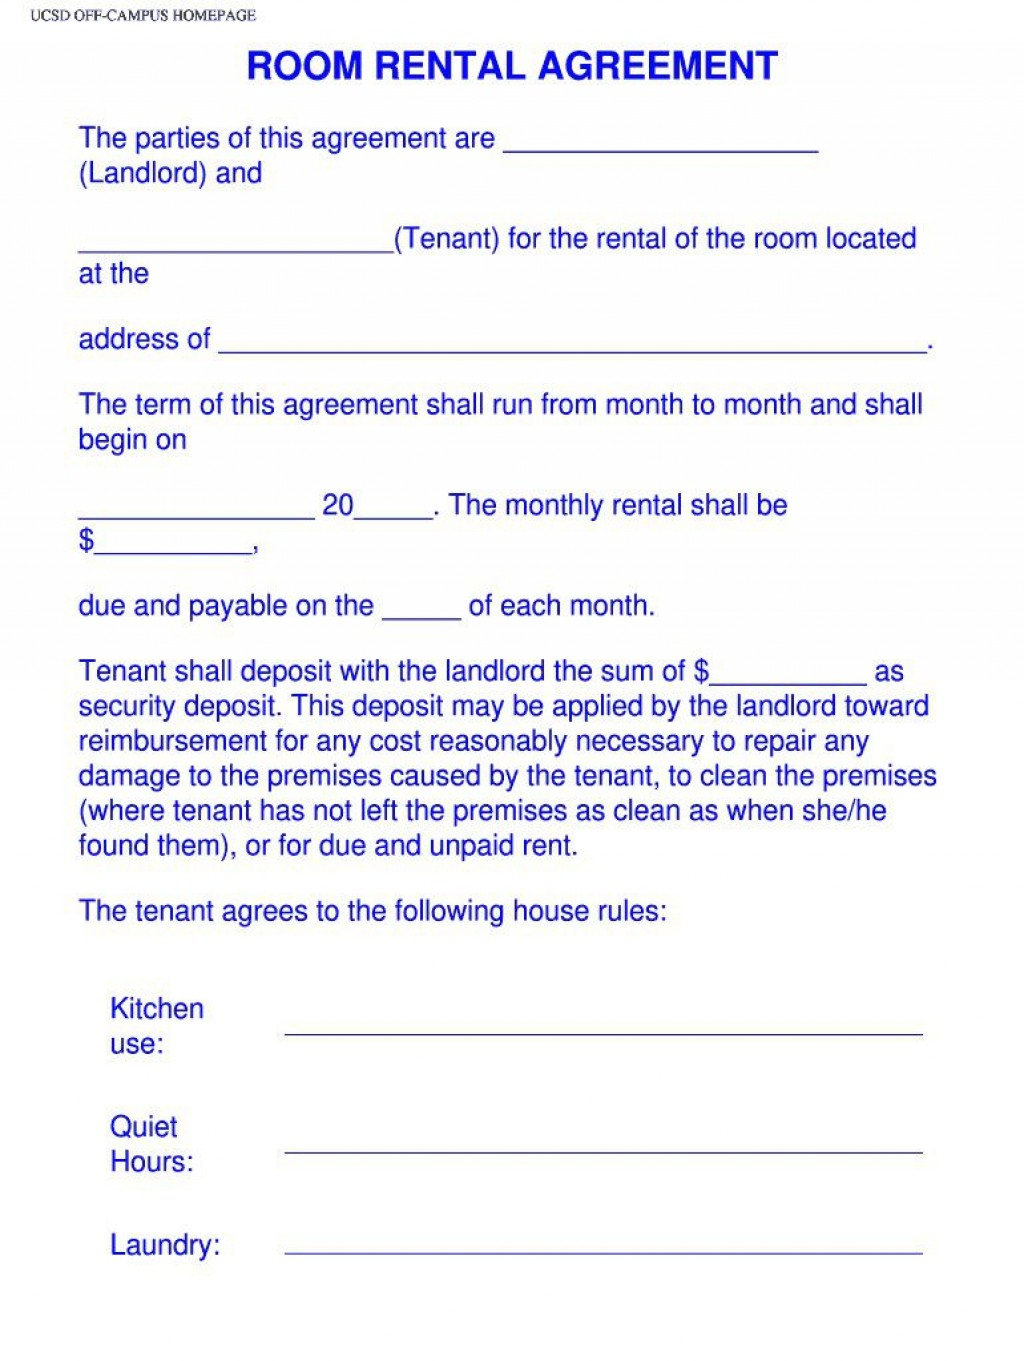 004 Surprising Roommate Rental Agreement Template Photo  Form Free ContractLarge